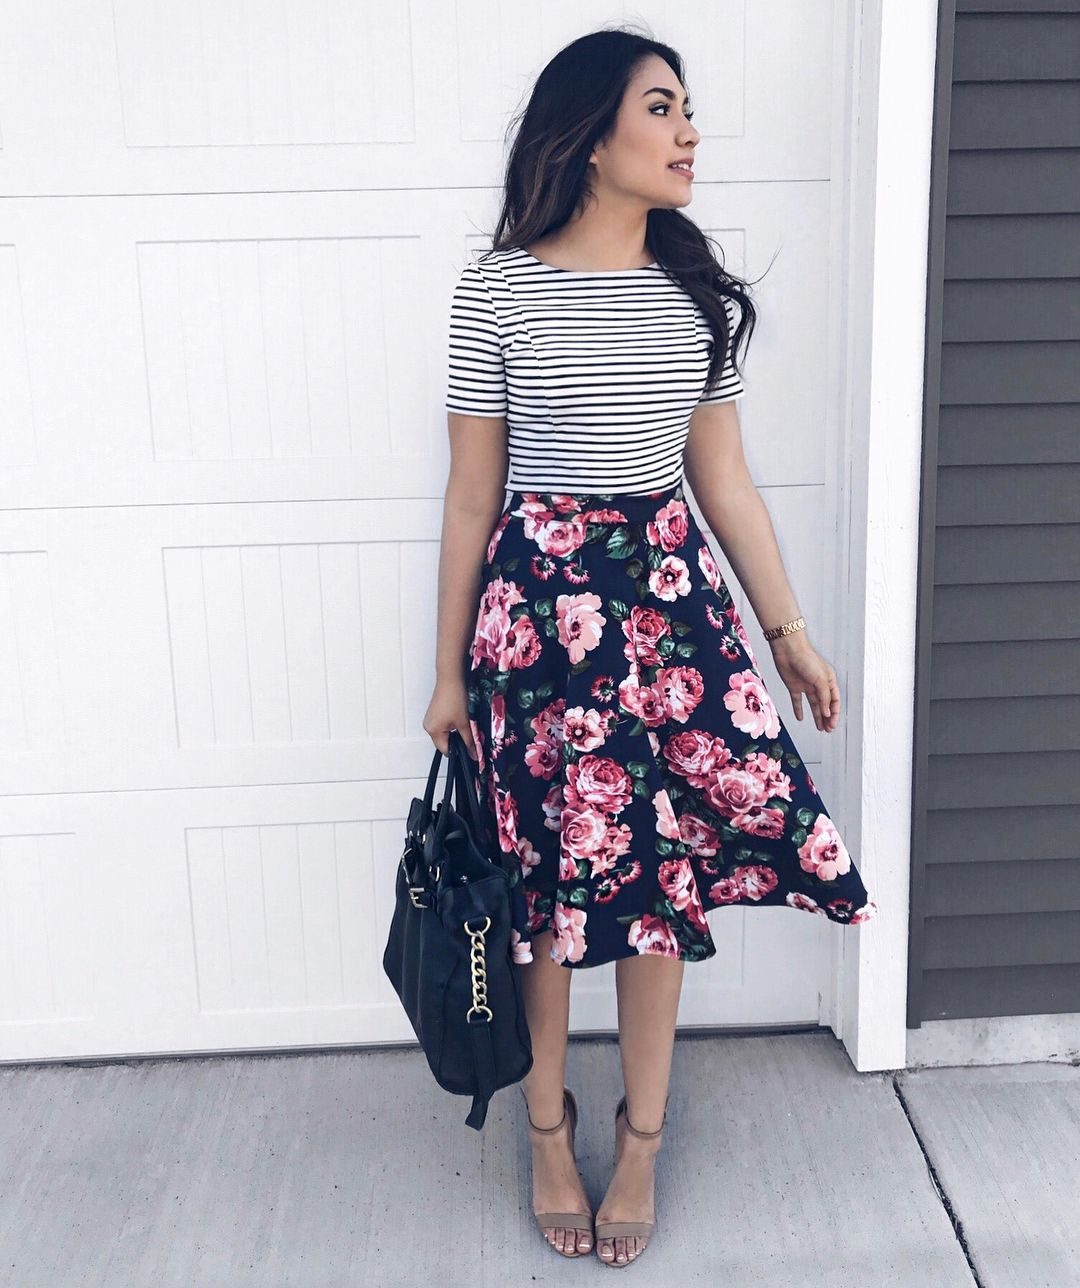 Thedarlingstyle Floral Skirt Outfits Cute Skirt Outfits Fashion [ 1288 x 1080 Pixel ]